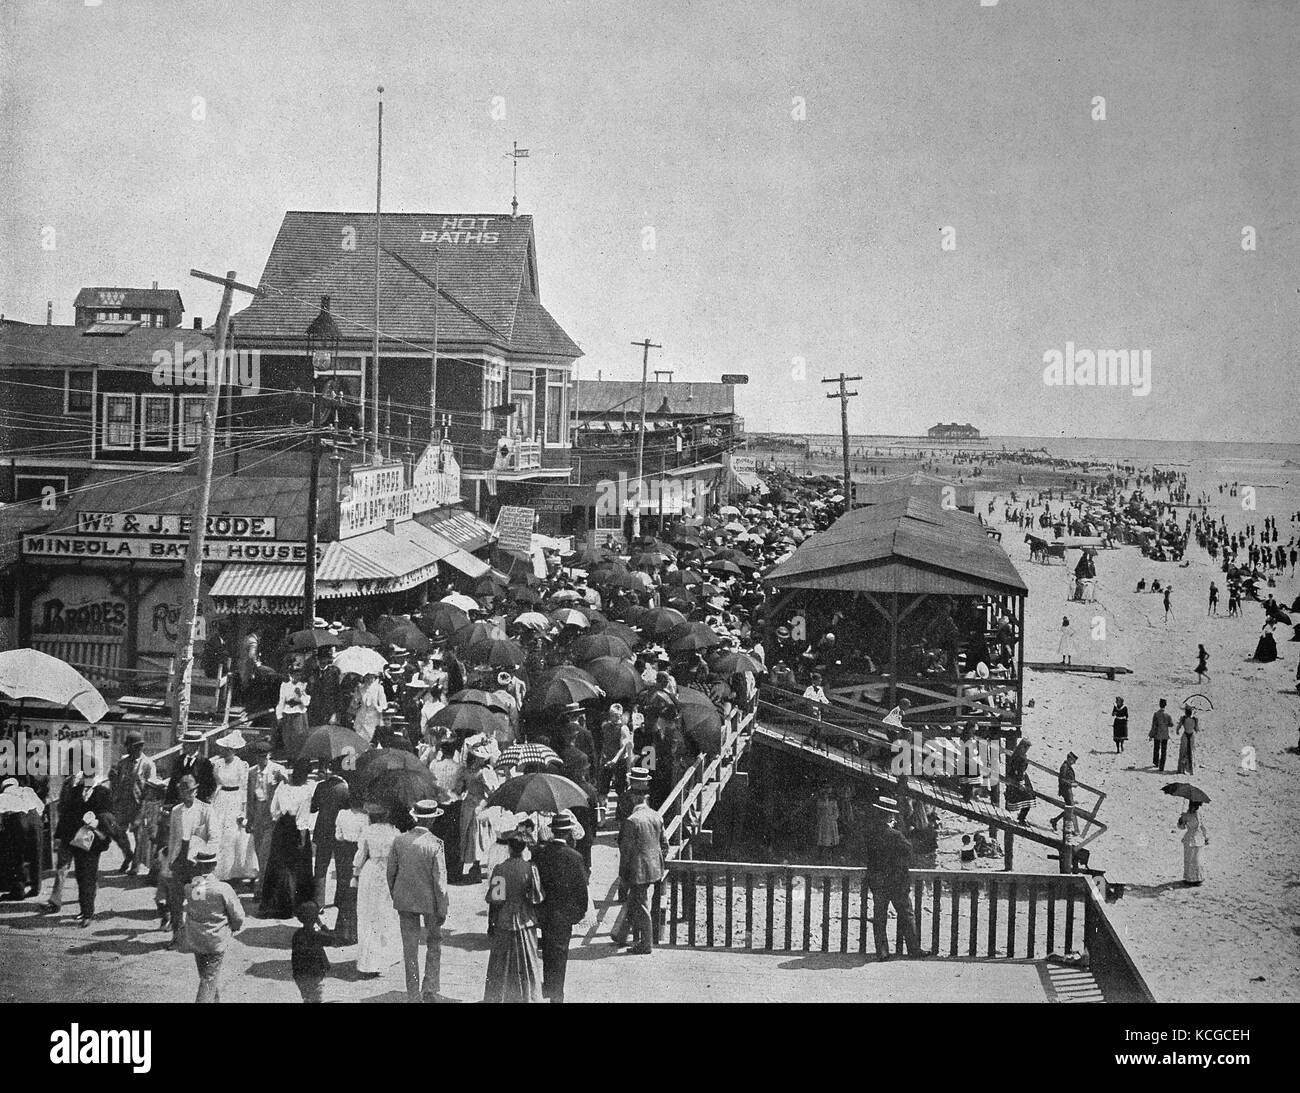 United States of America, the beach promenade in Atlantic City, seaside resort of Philadelphia, State of Pennsylvania, - Stock Image